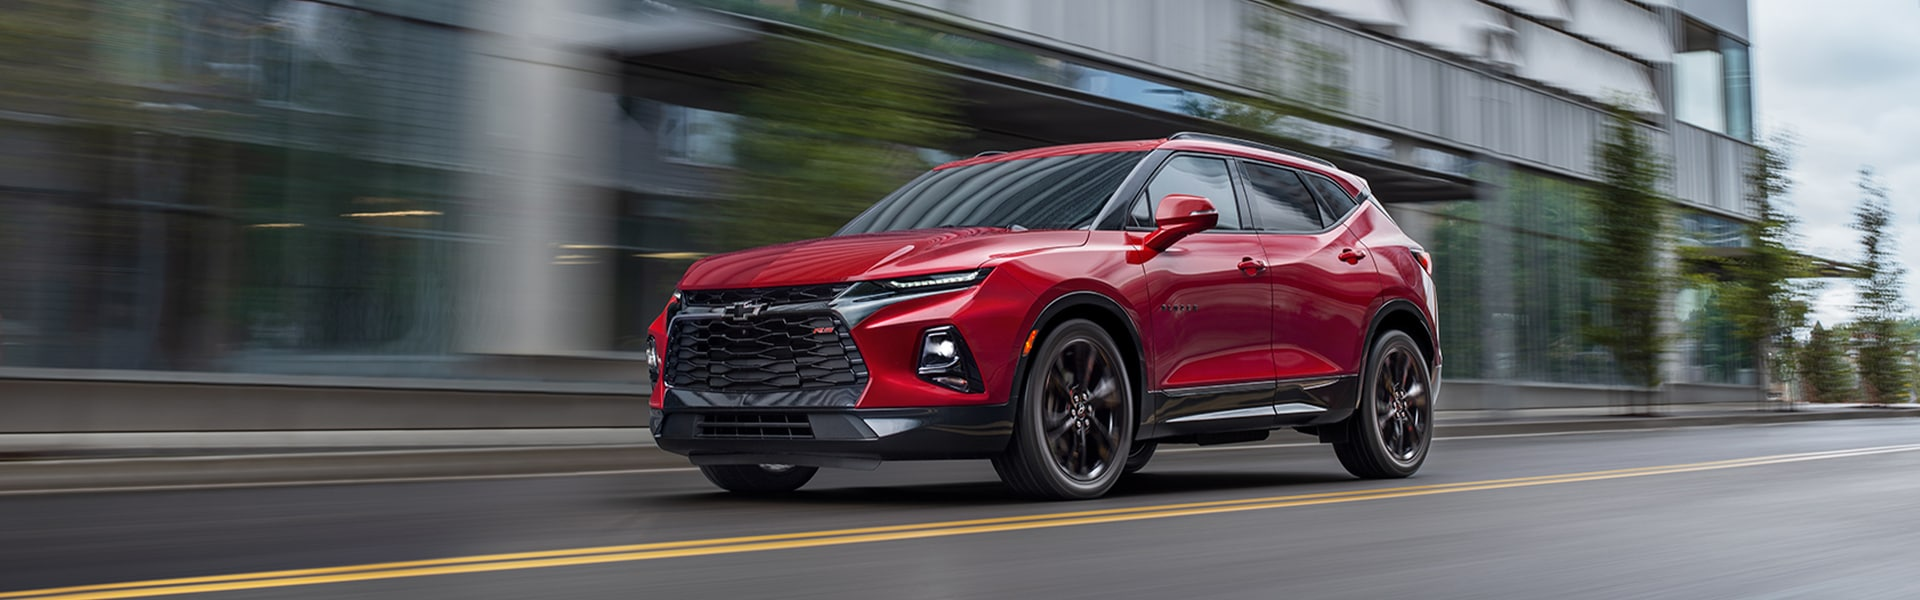 Chevrolet of New Bern is a Car Dealership in New Bern near Bogue NC | 2020 Chevrolet Blazer driving on city street